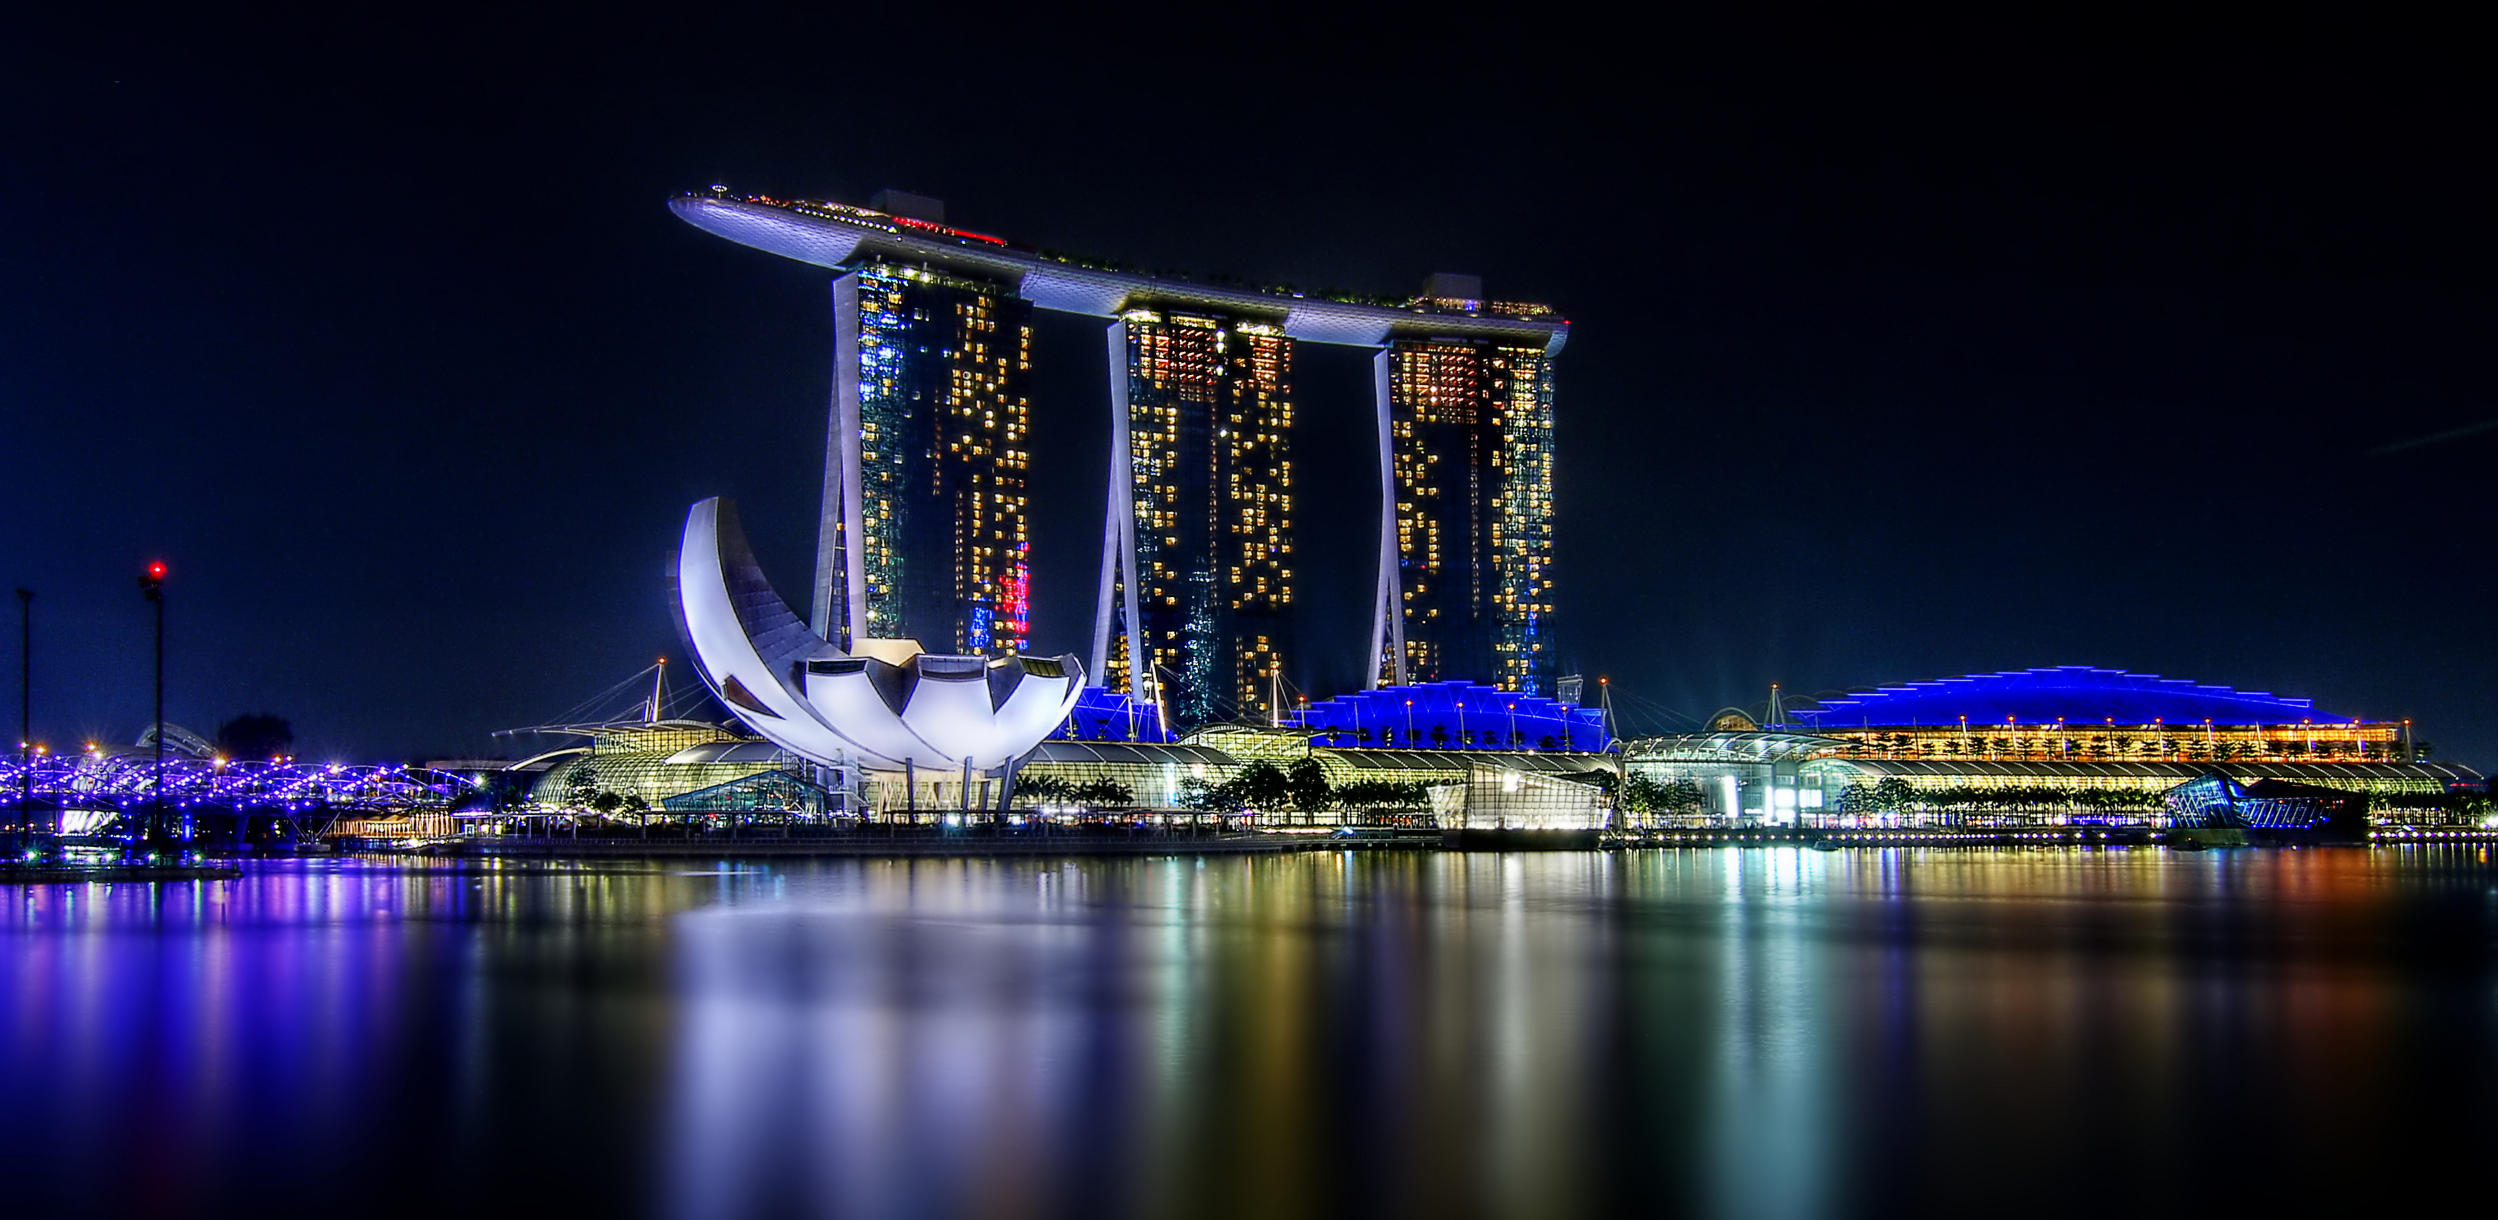 Marina Bay Sands is One Big Foreign Direct Investment